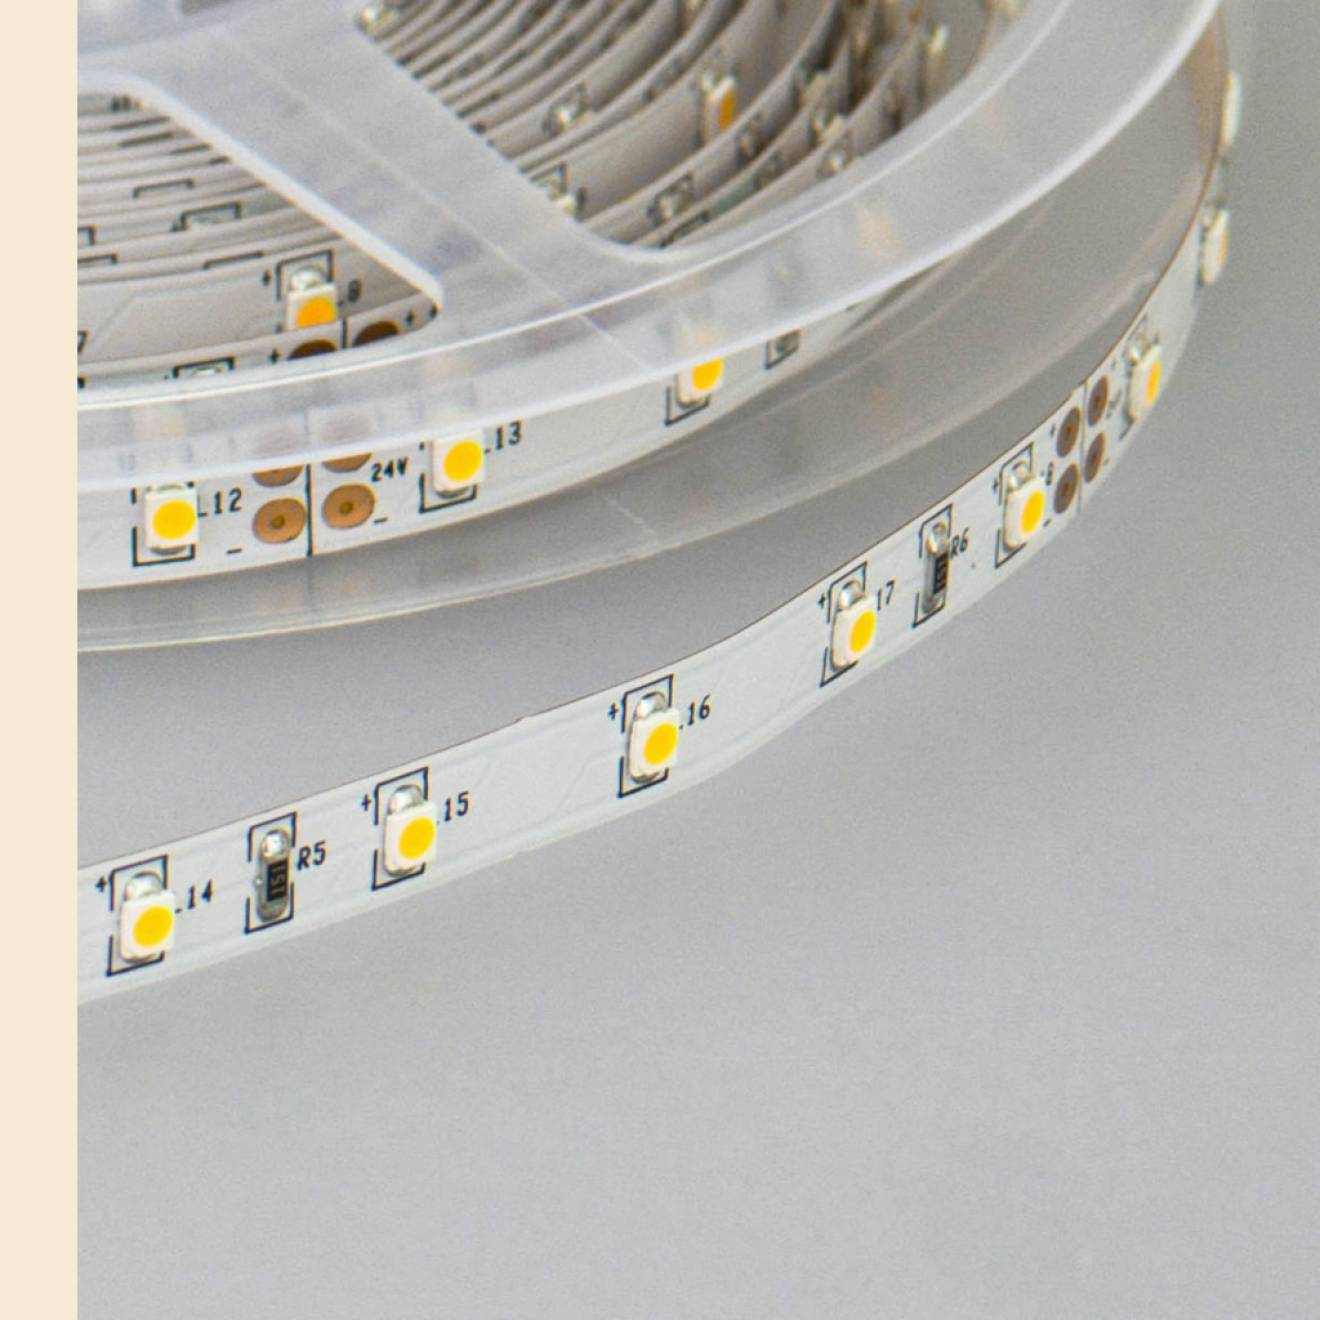 solarox 24v led strip 5m rolle warmwei. Black Bedroom Furniture Sets. Home Design Ideas